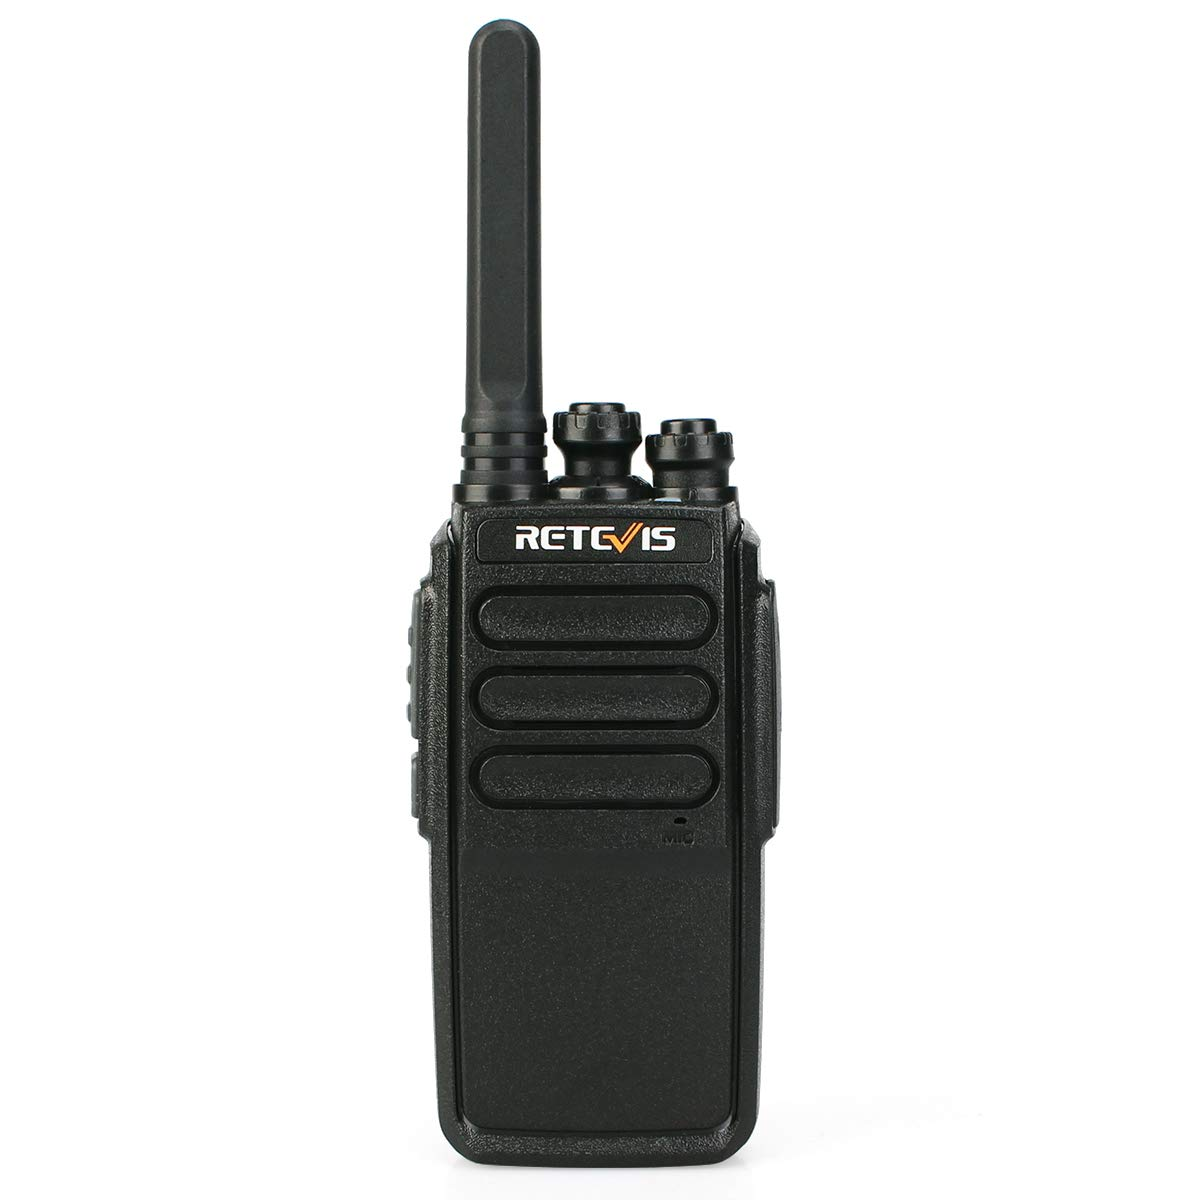 Retevis RT28 Walkie Talkies 10 Pack Two Way Radio Rechargeable UHF FRS 16CH VOX Emergency Alarm Security Long Range 2 Way Radios with USB Charger